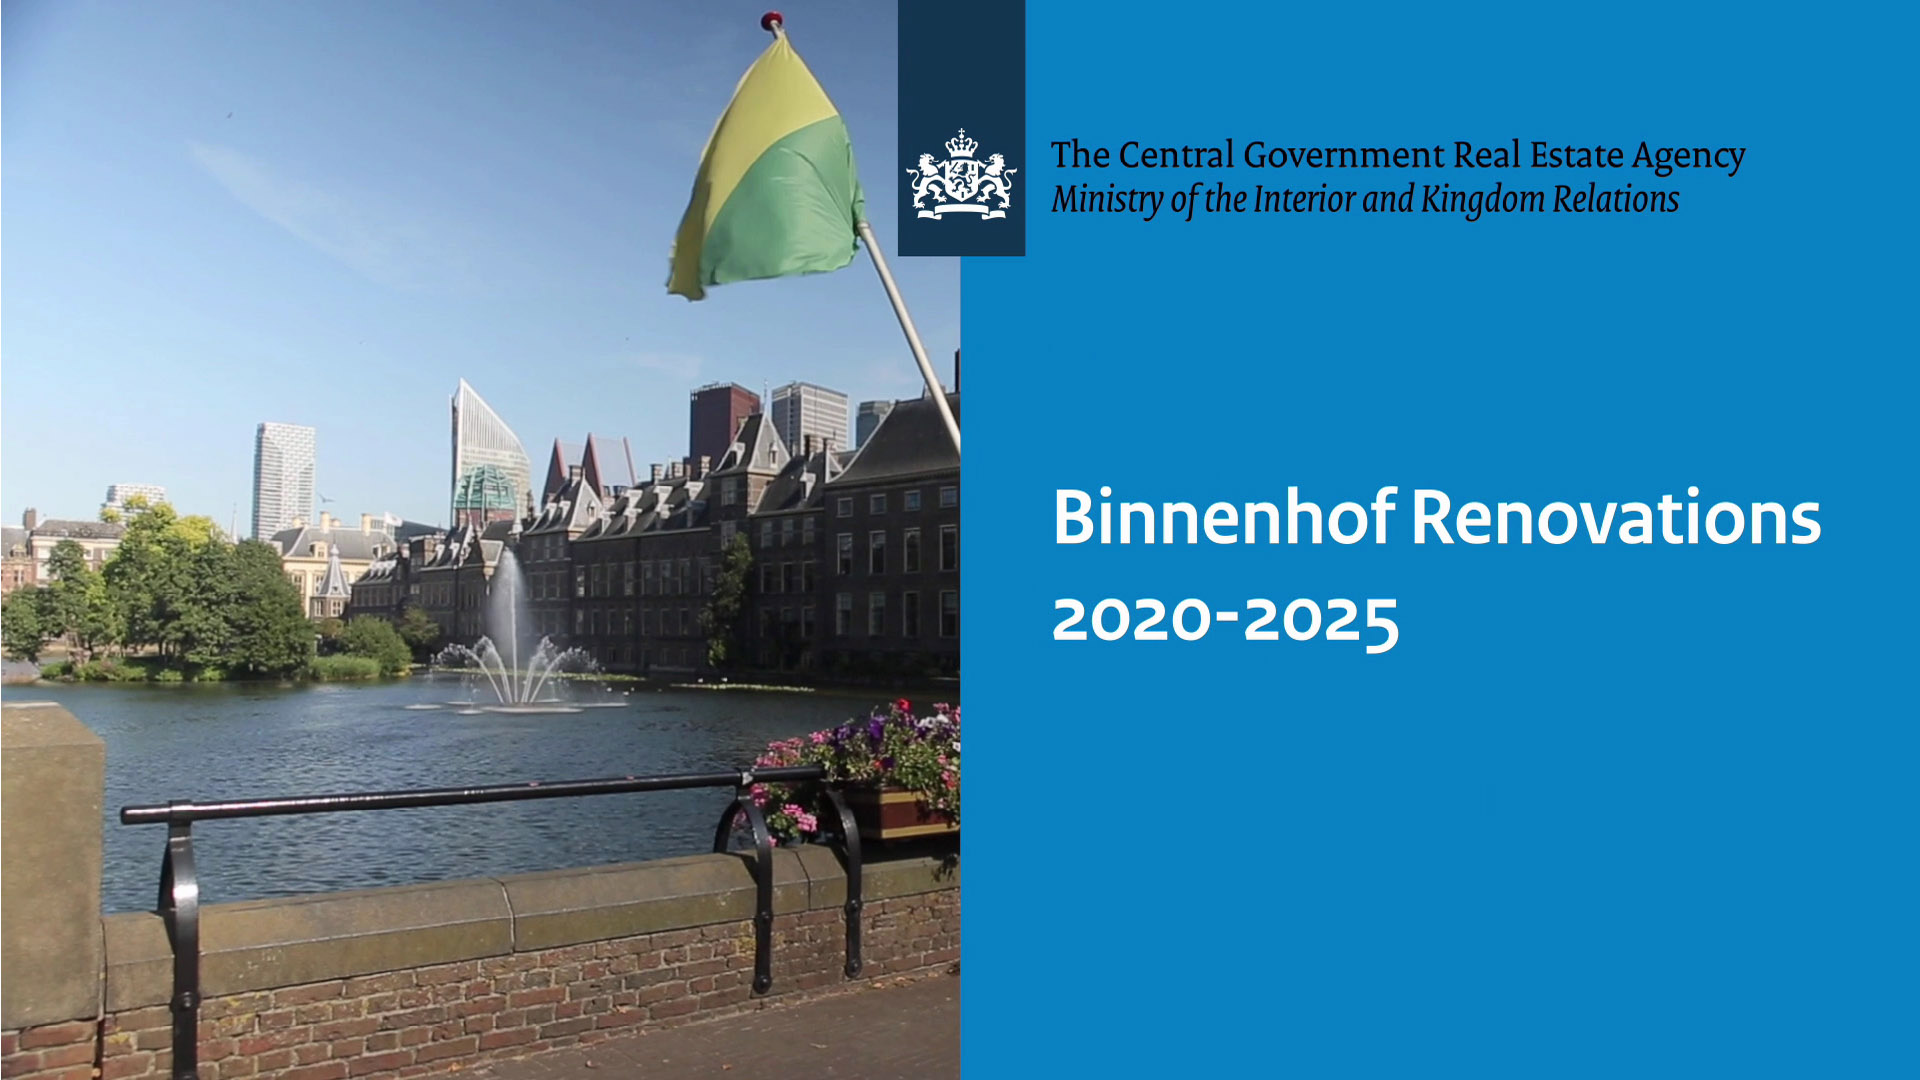 Image for video: Renovation Binnenhof 2020-2025